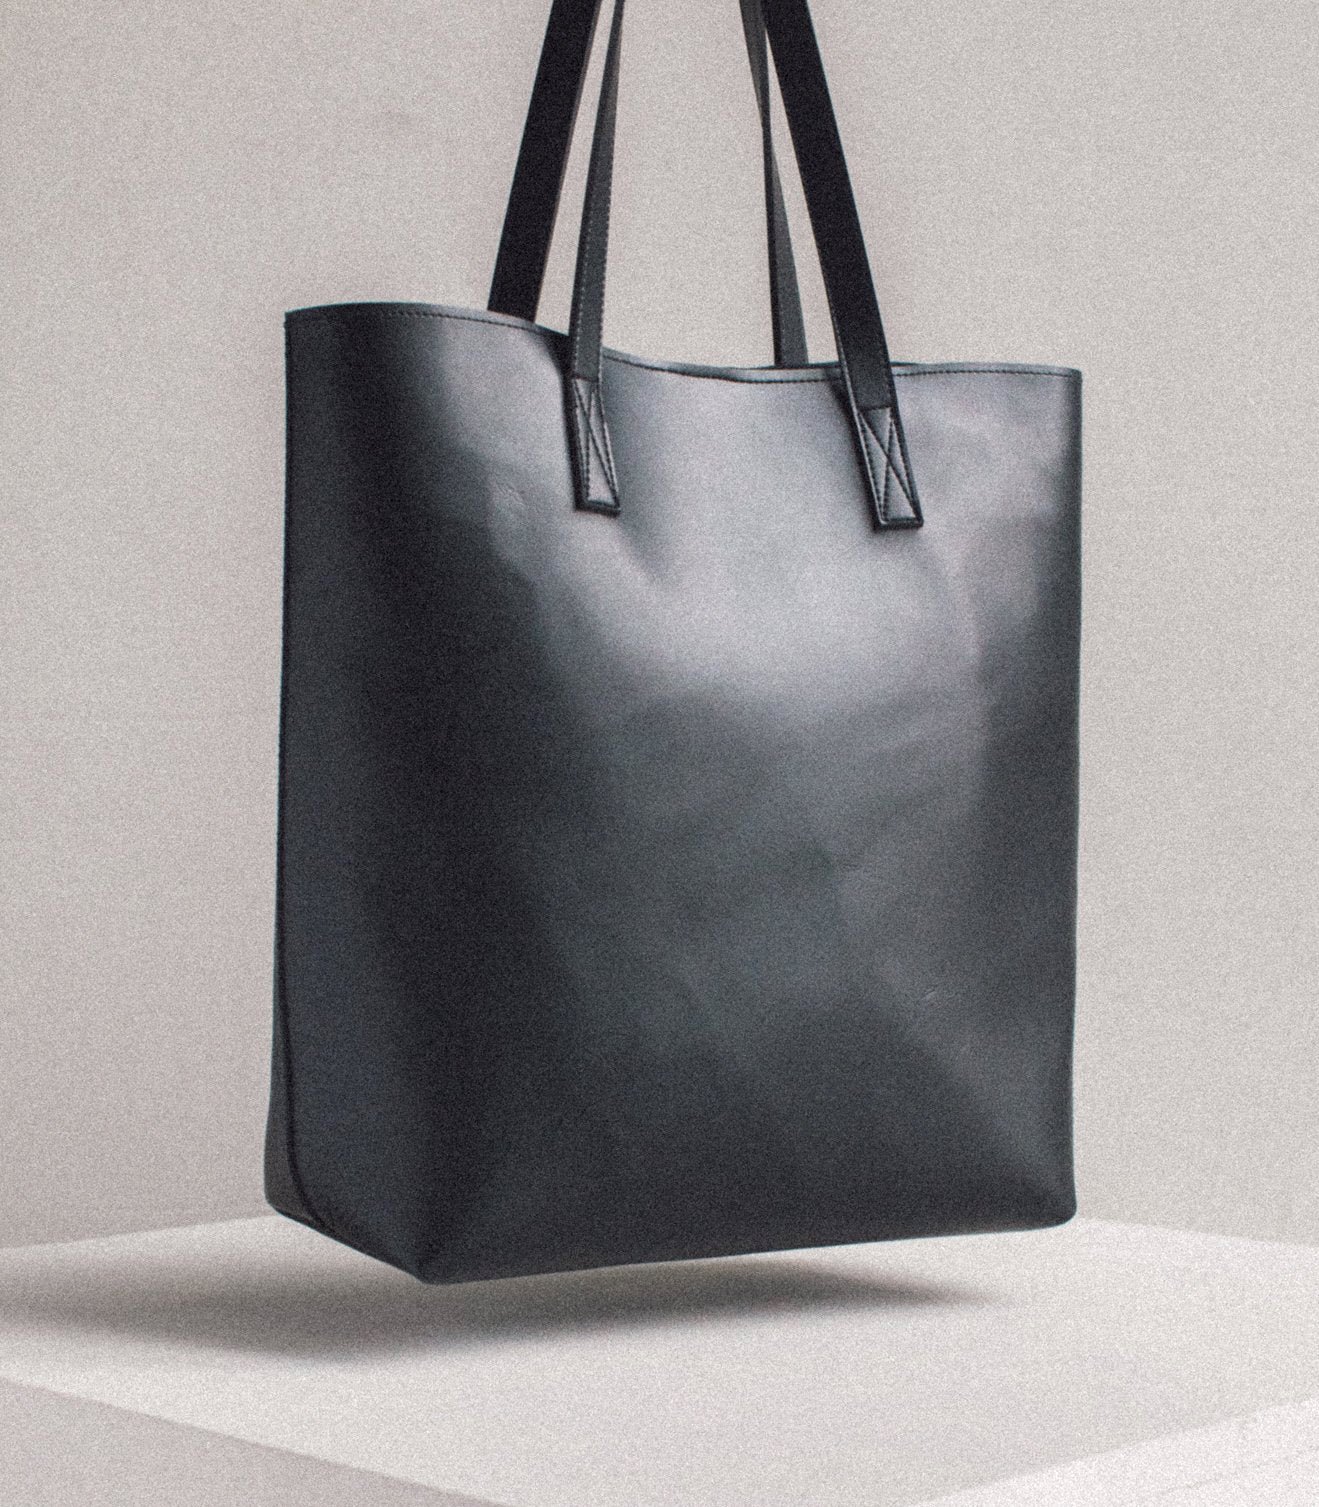 Dalisay Bayong Tote Black Vegan Leather - Vela Manila